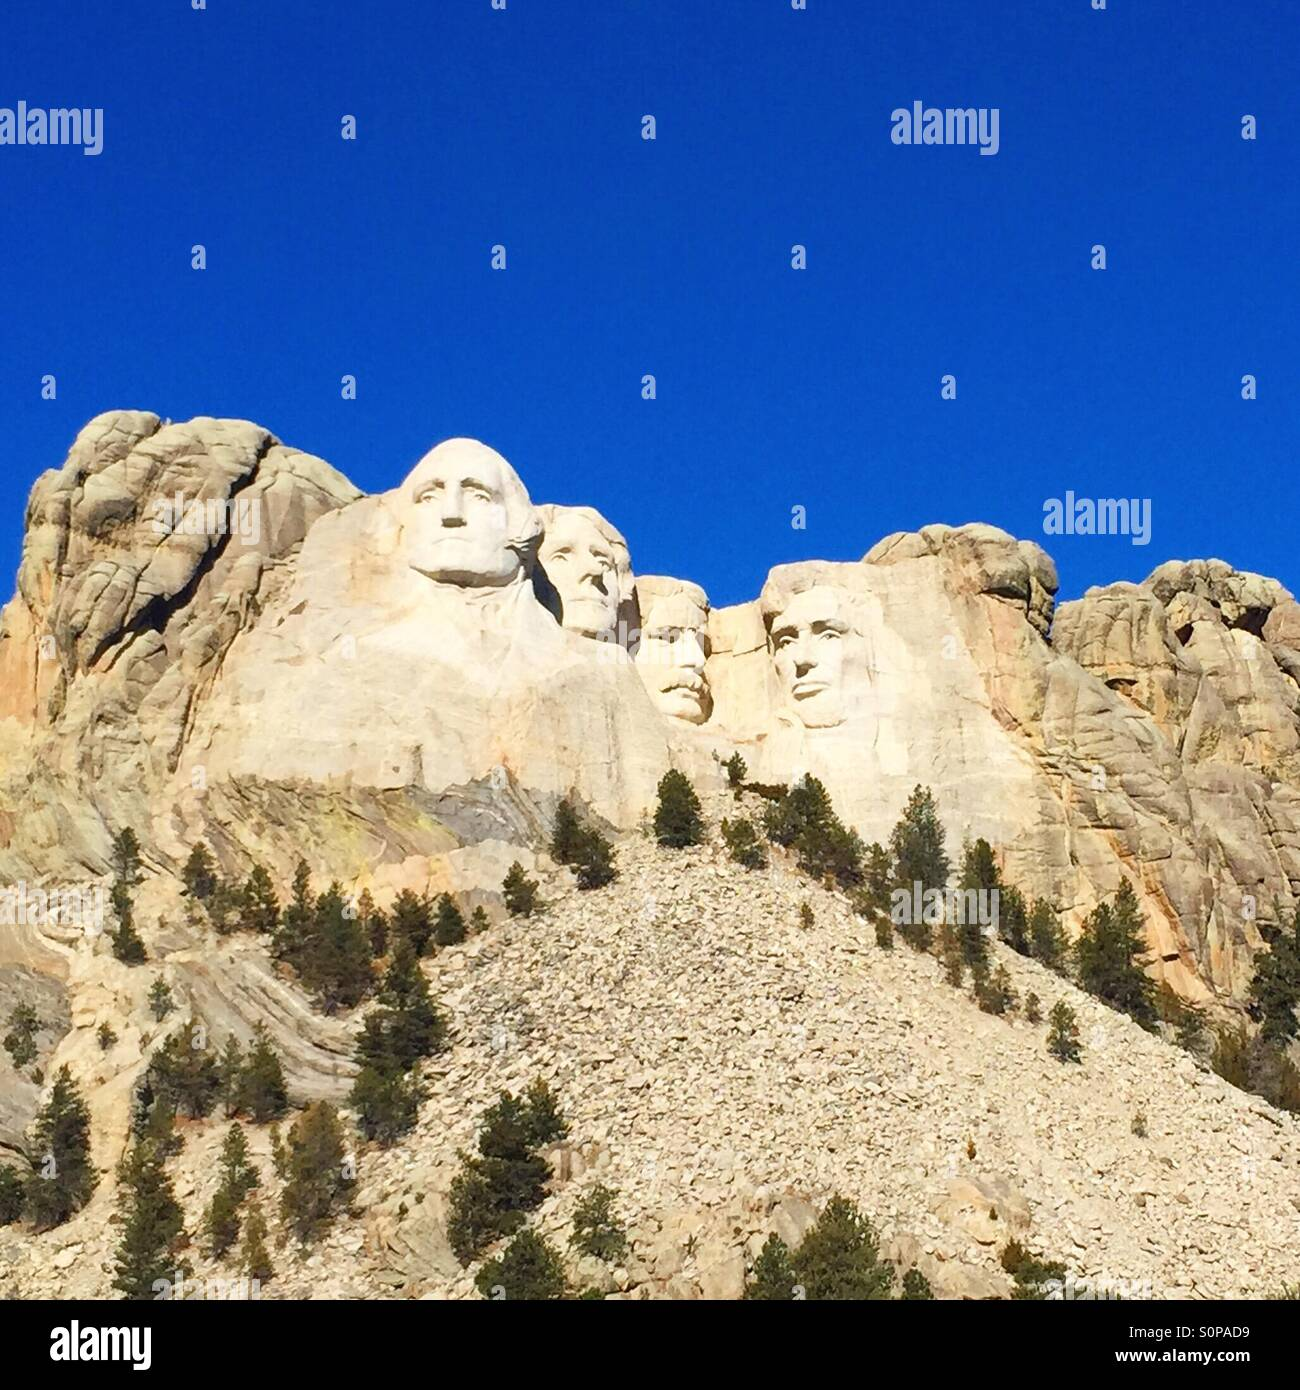 Mount Rushmore - Stock Image